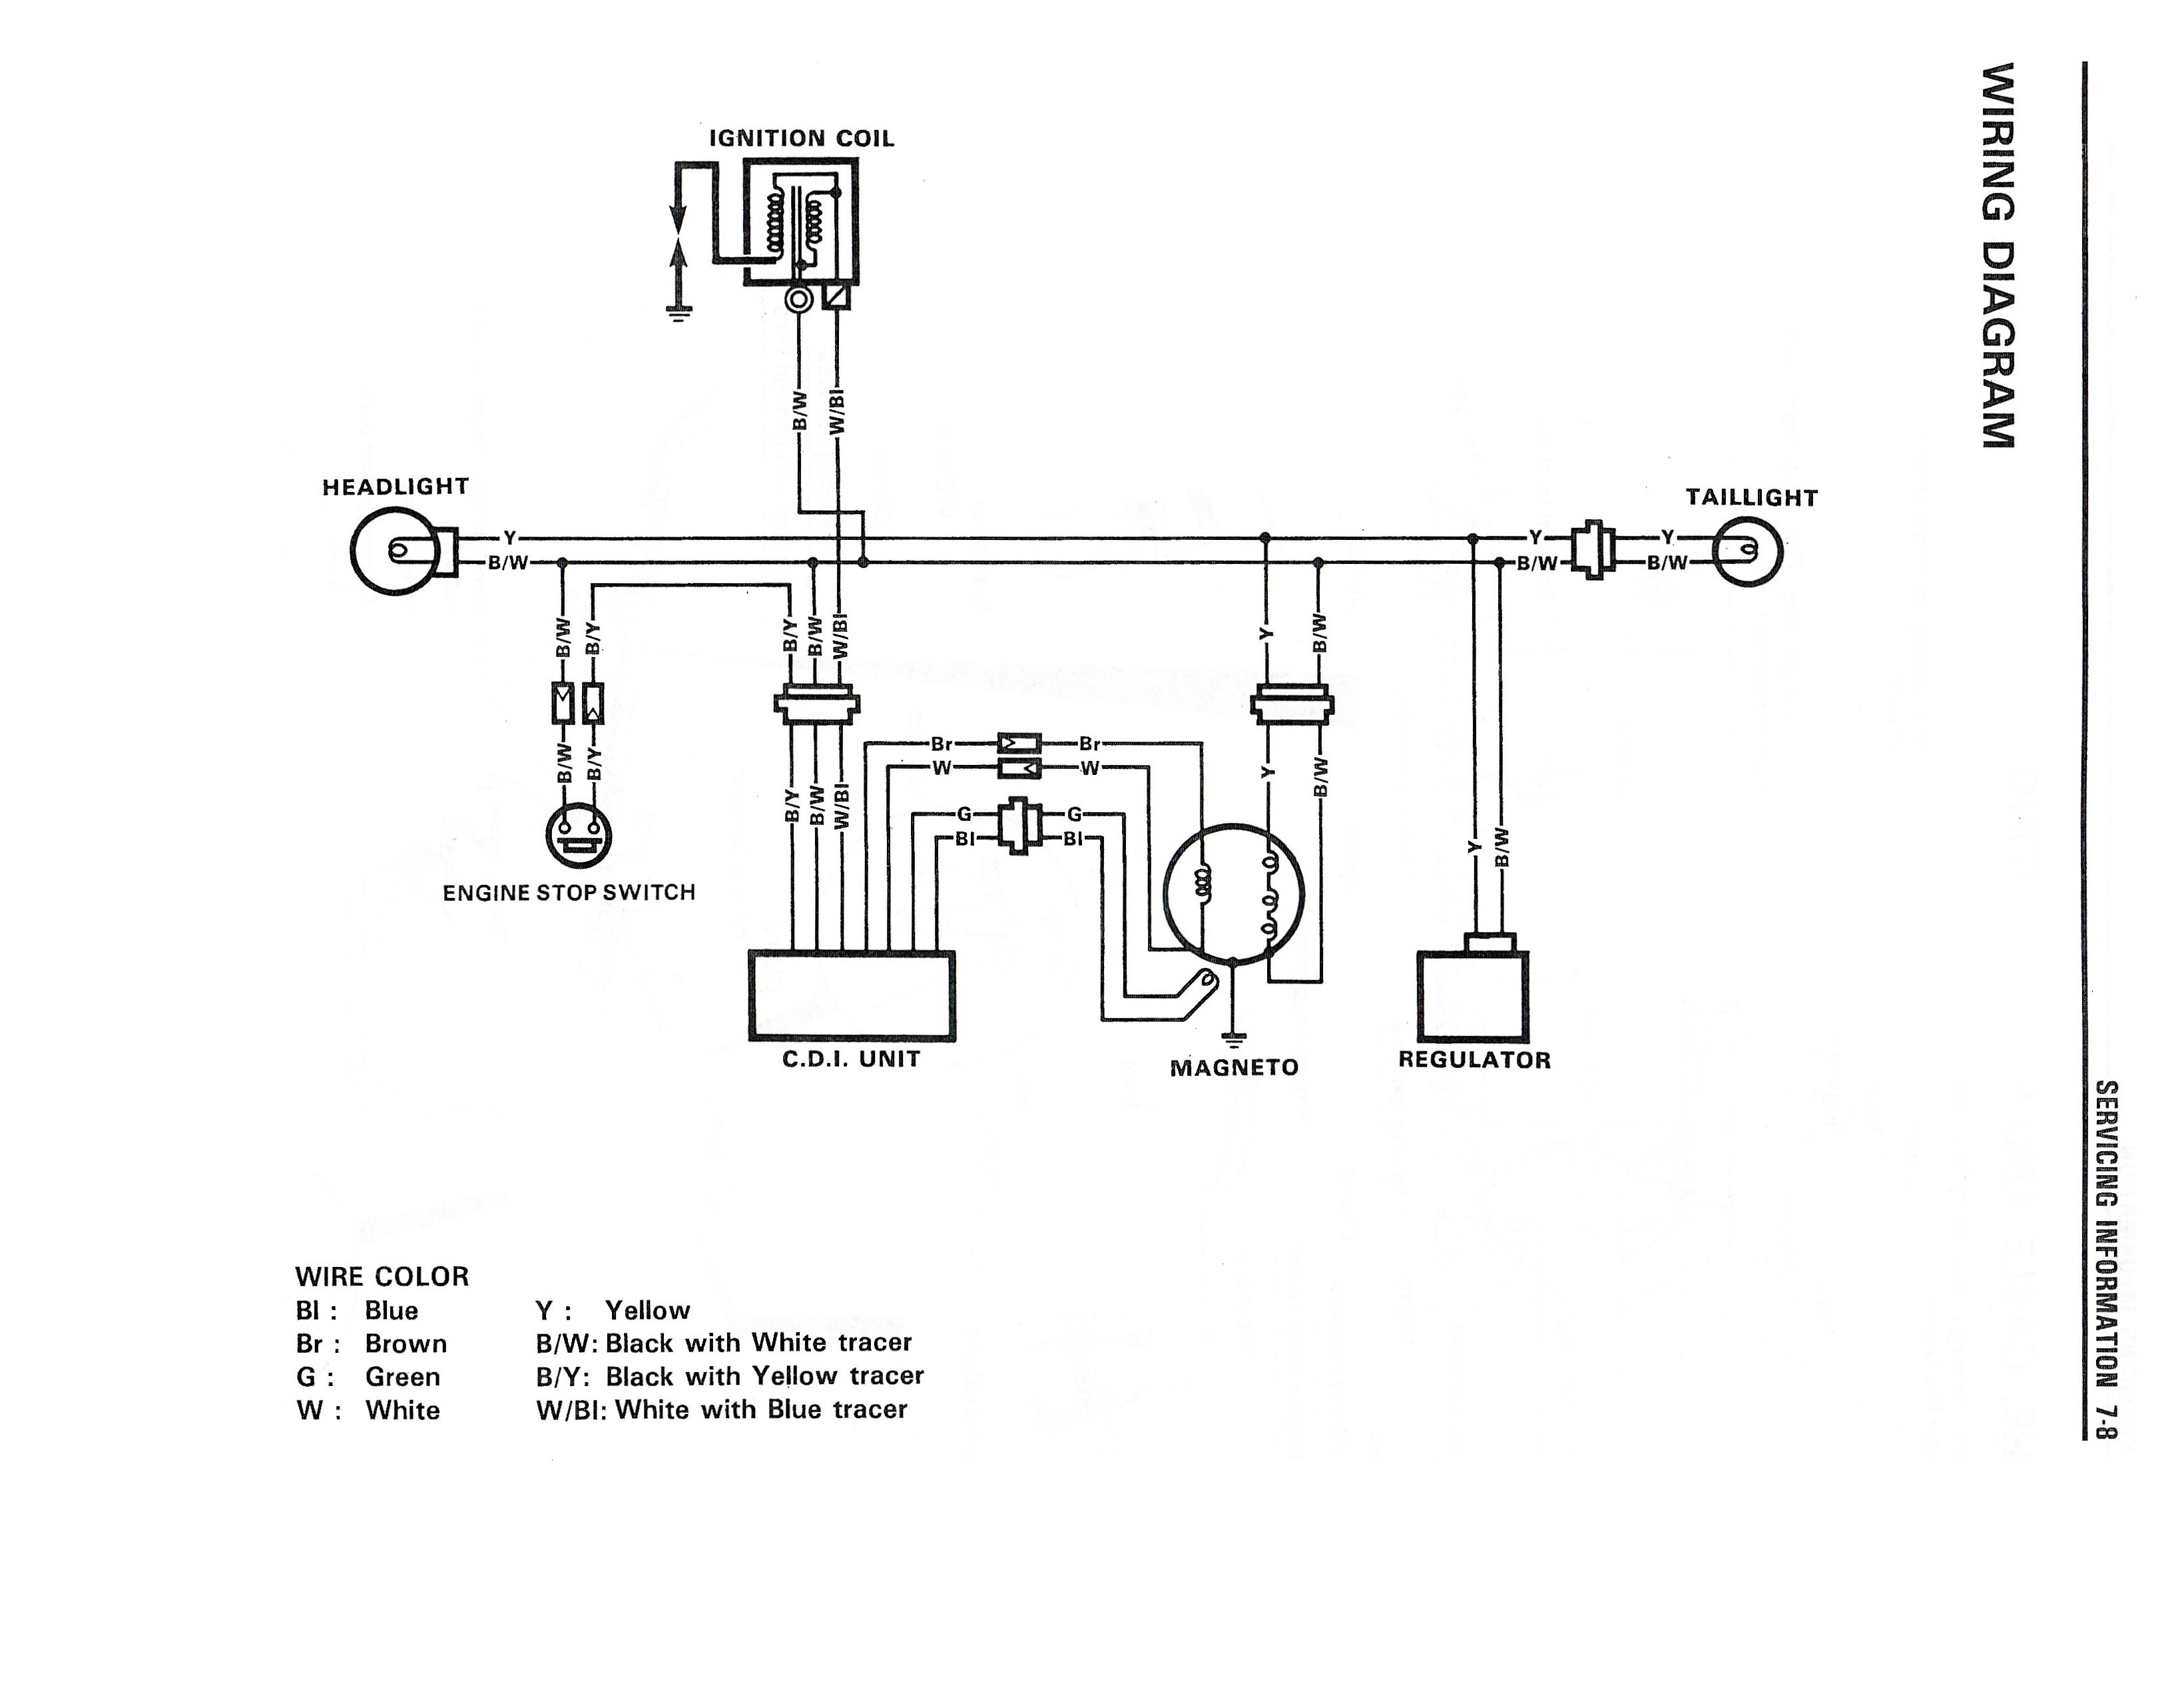 wiring diagram for the dr350 (1990 and later models) suzuki on Raptor 350 Wiring Diagram for wiring diagram for the dr350 (1990 and later models) at suzuki dr350 wiring diagram